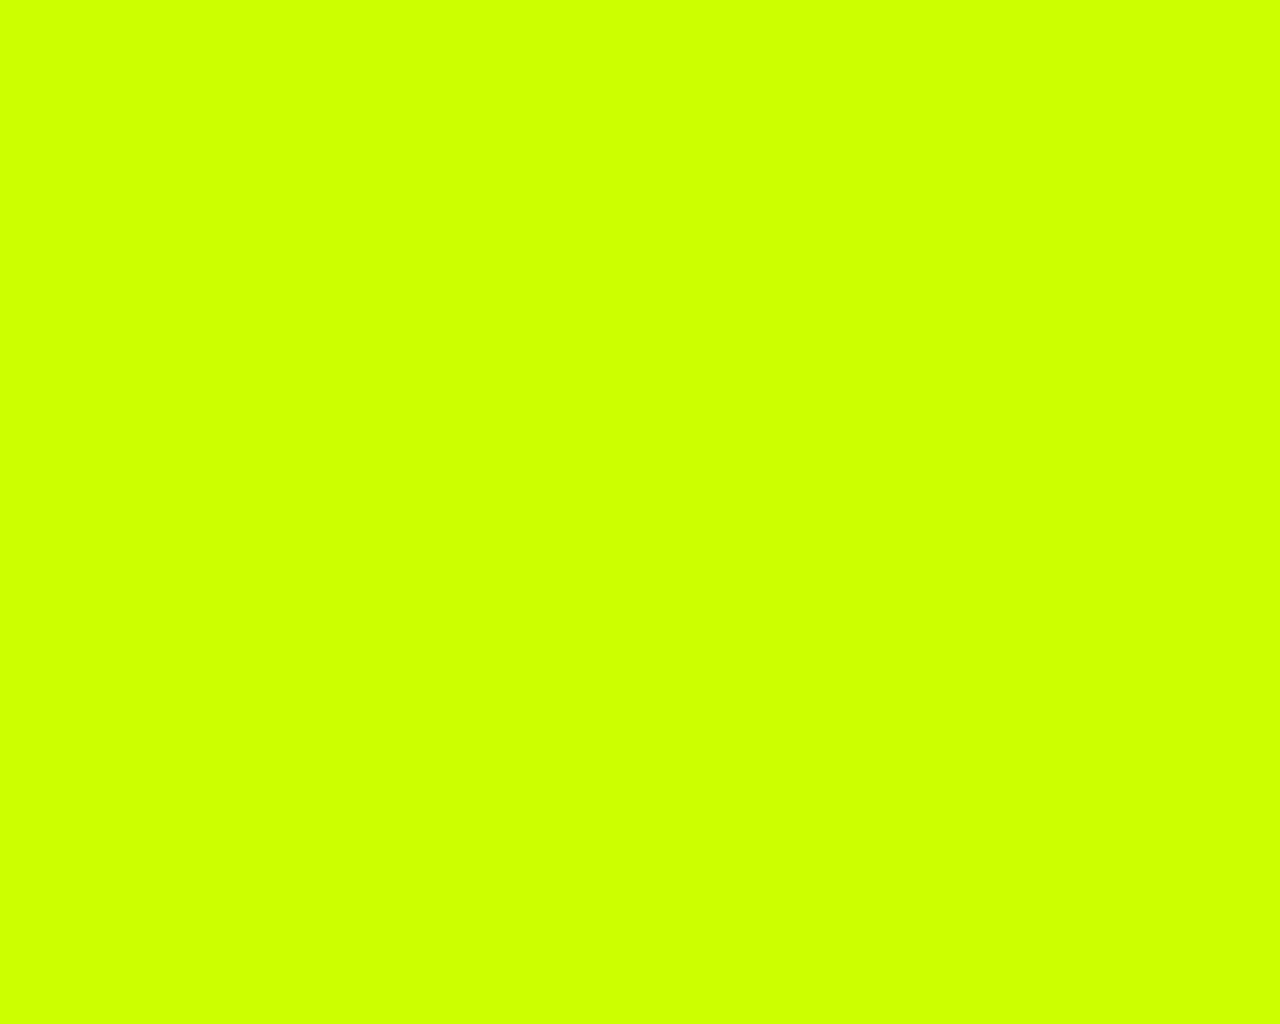 1280x1024 Electric Lime Solid Color Background